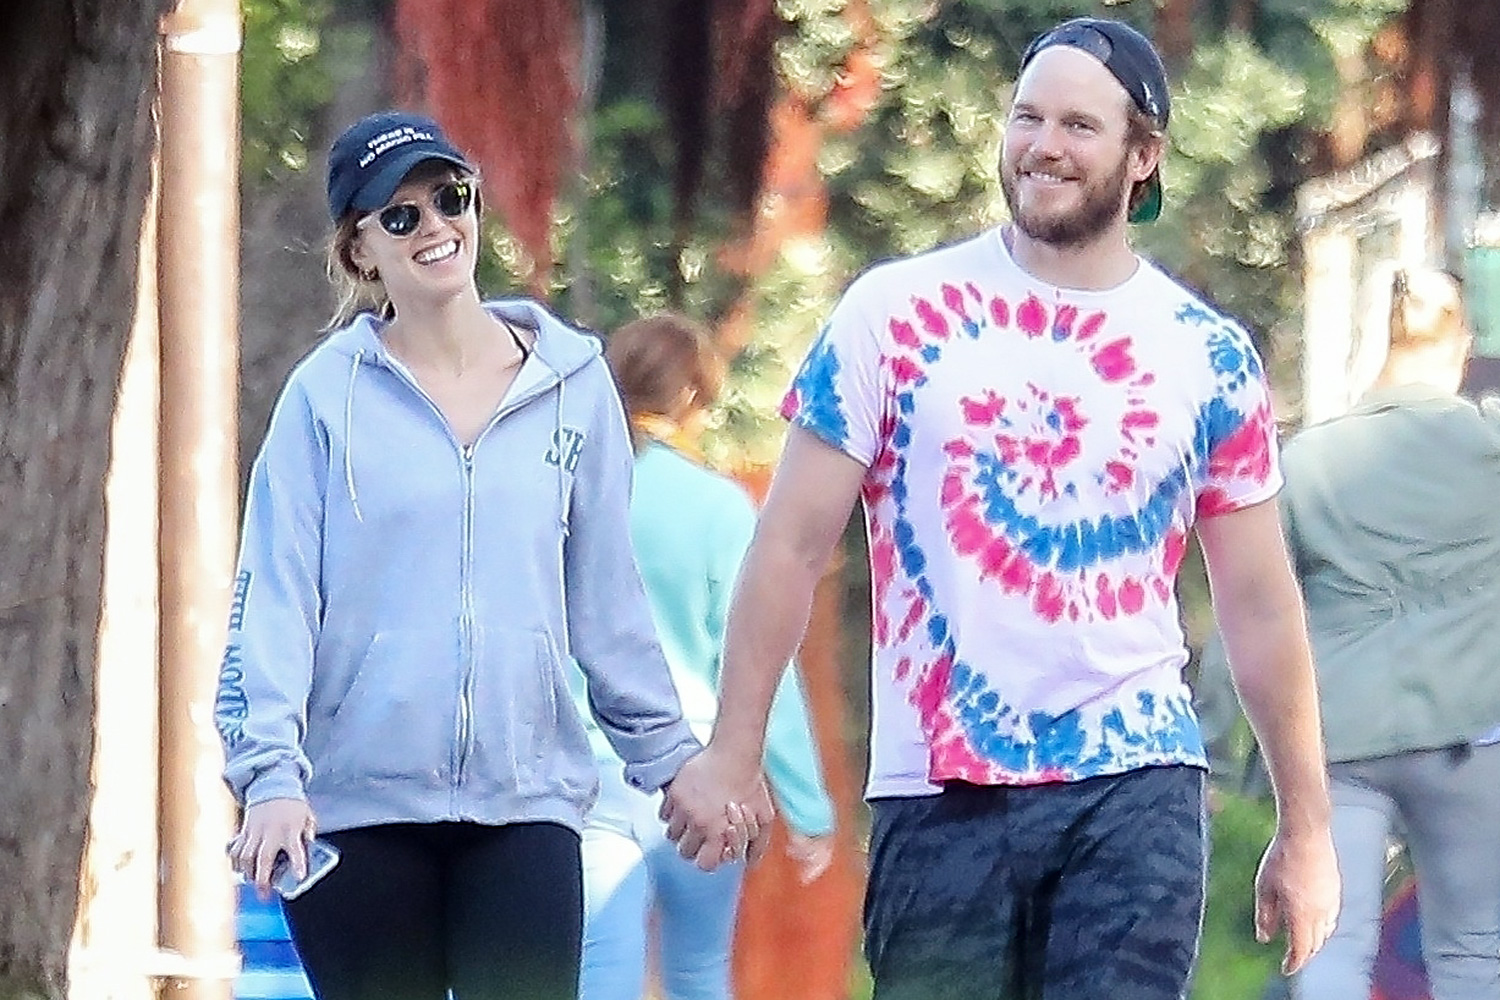 Chris Pratt and Katherine Schwarzenegger take a Romantic Sunset Stroll